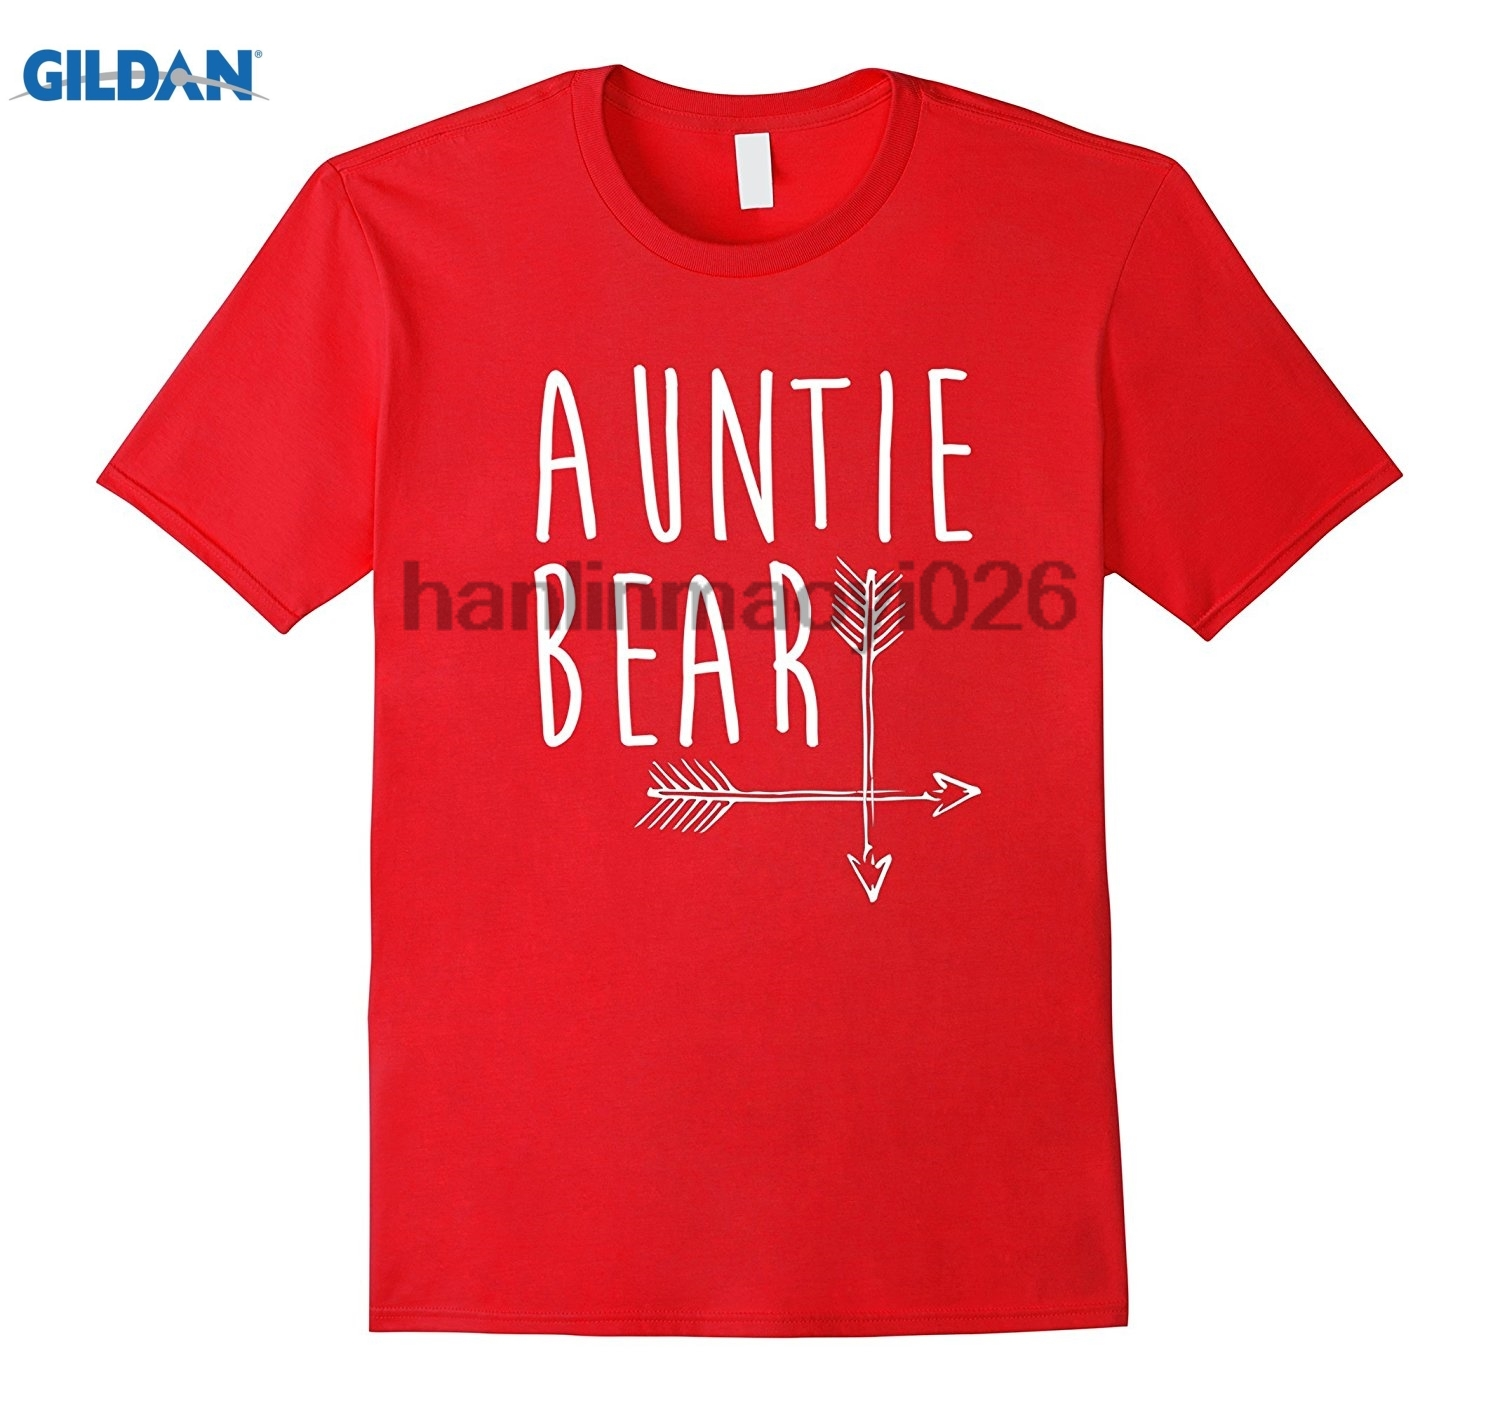 GILDAN Auntie Bear T-Shirt Family Portrait With Mama and Papa Bear